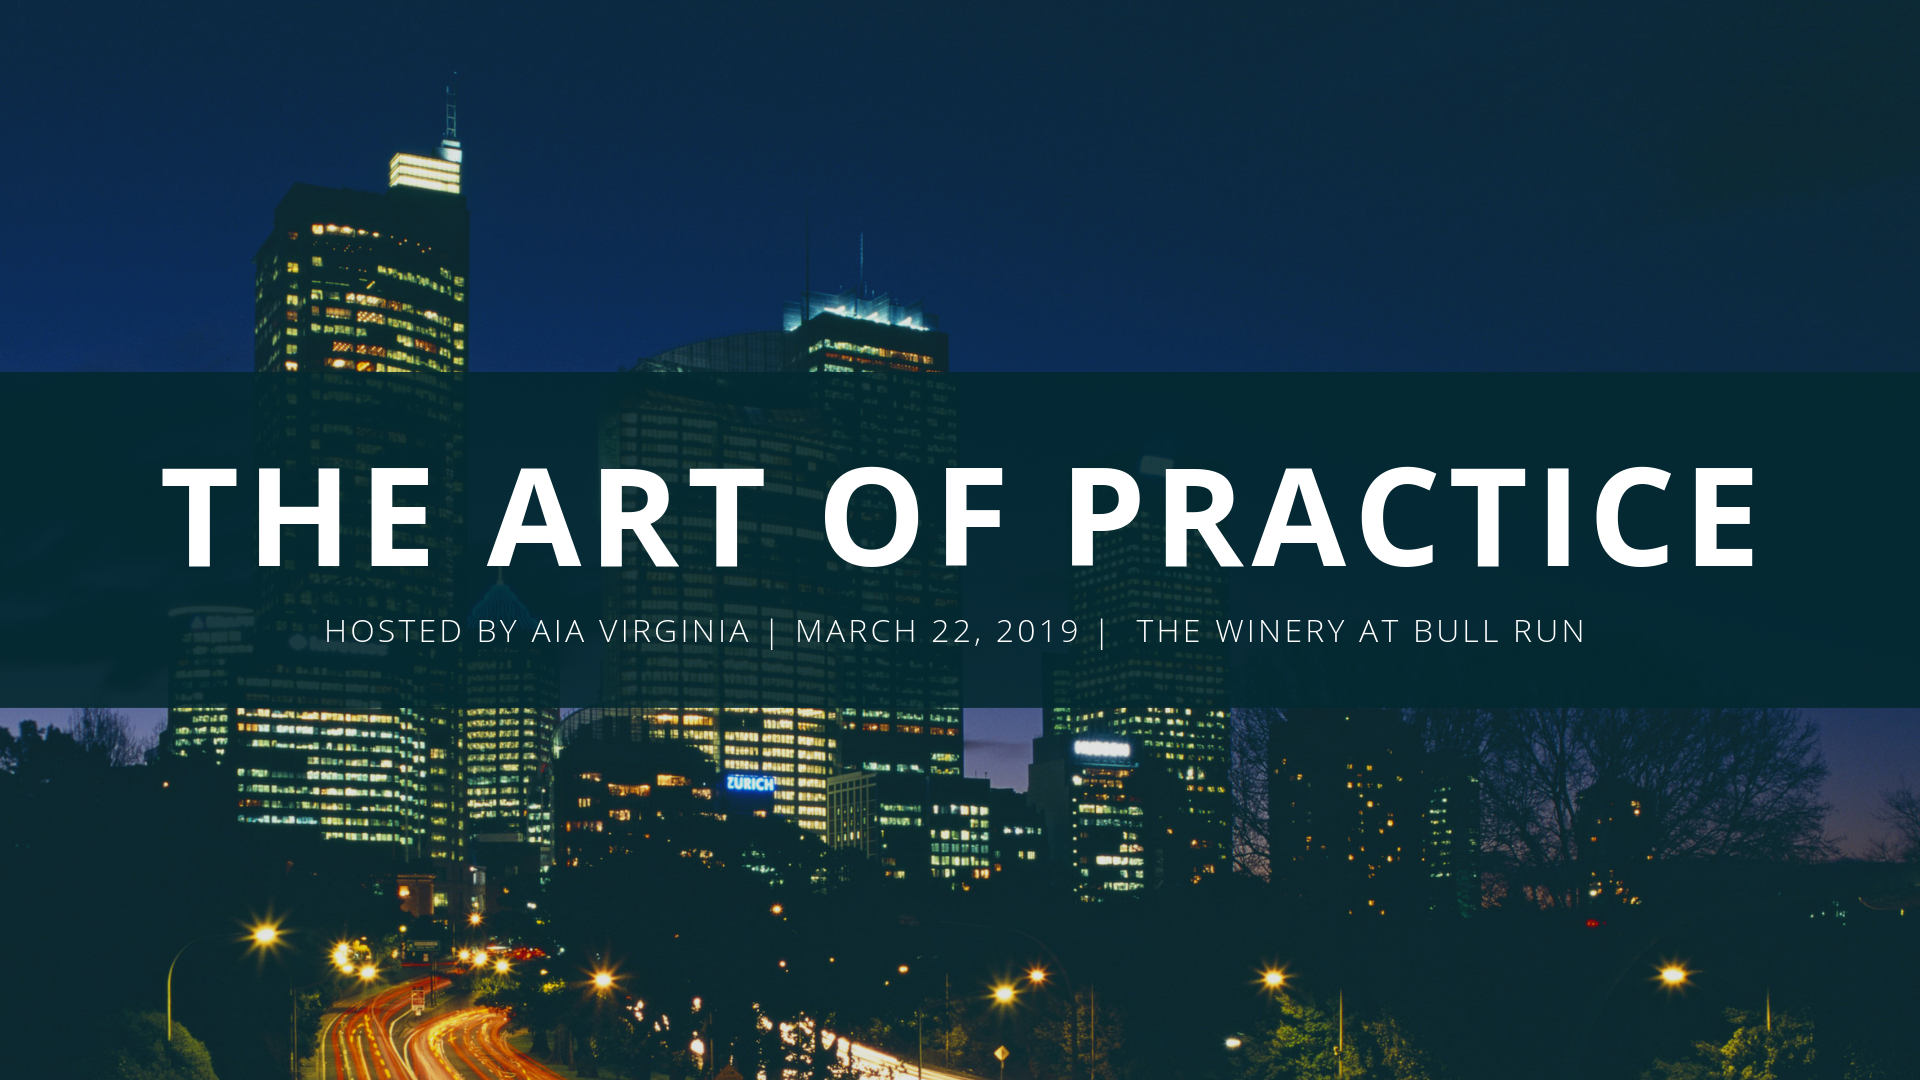 Art of Practice Agenda Announced